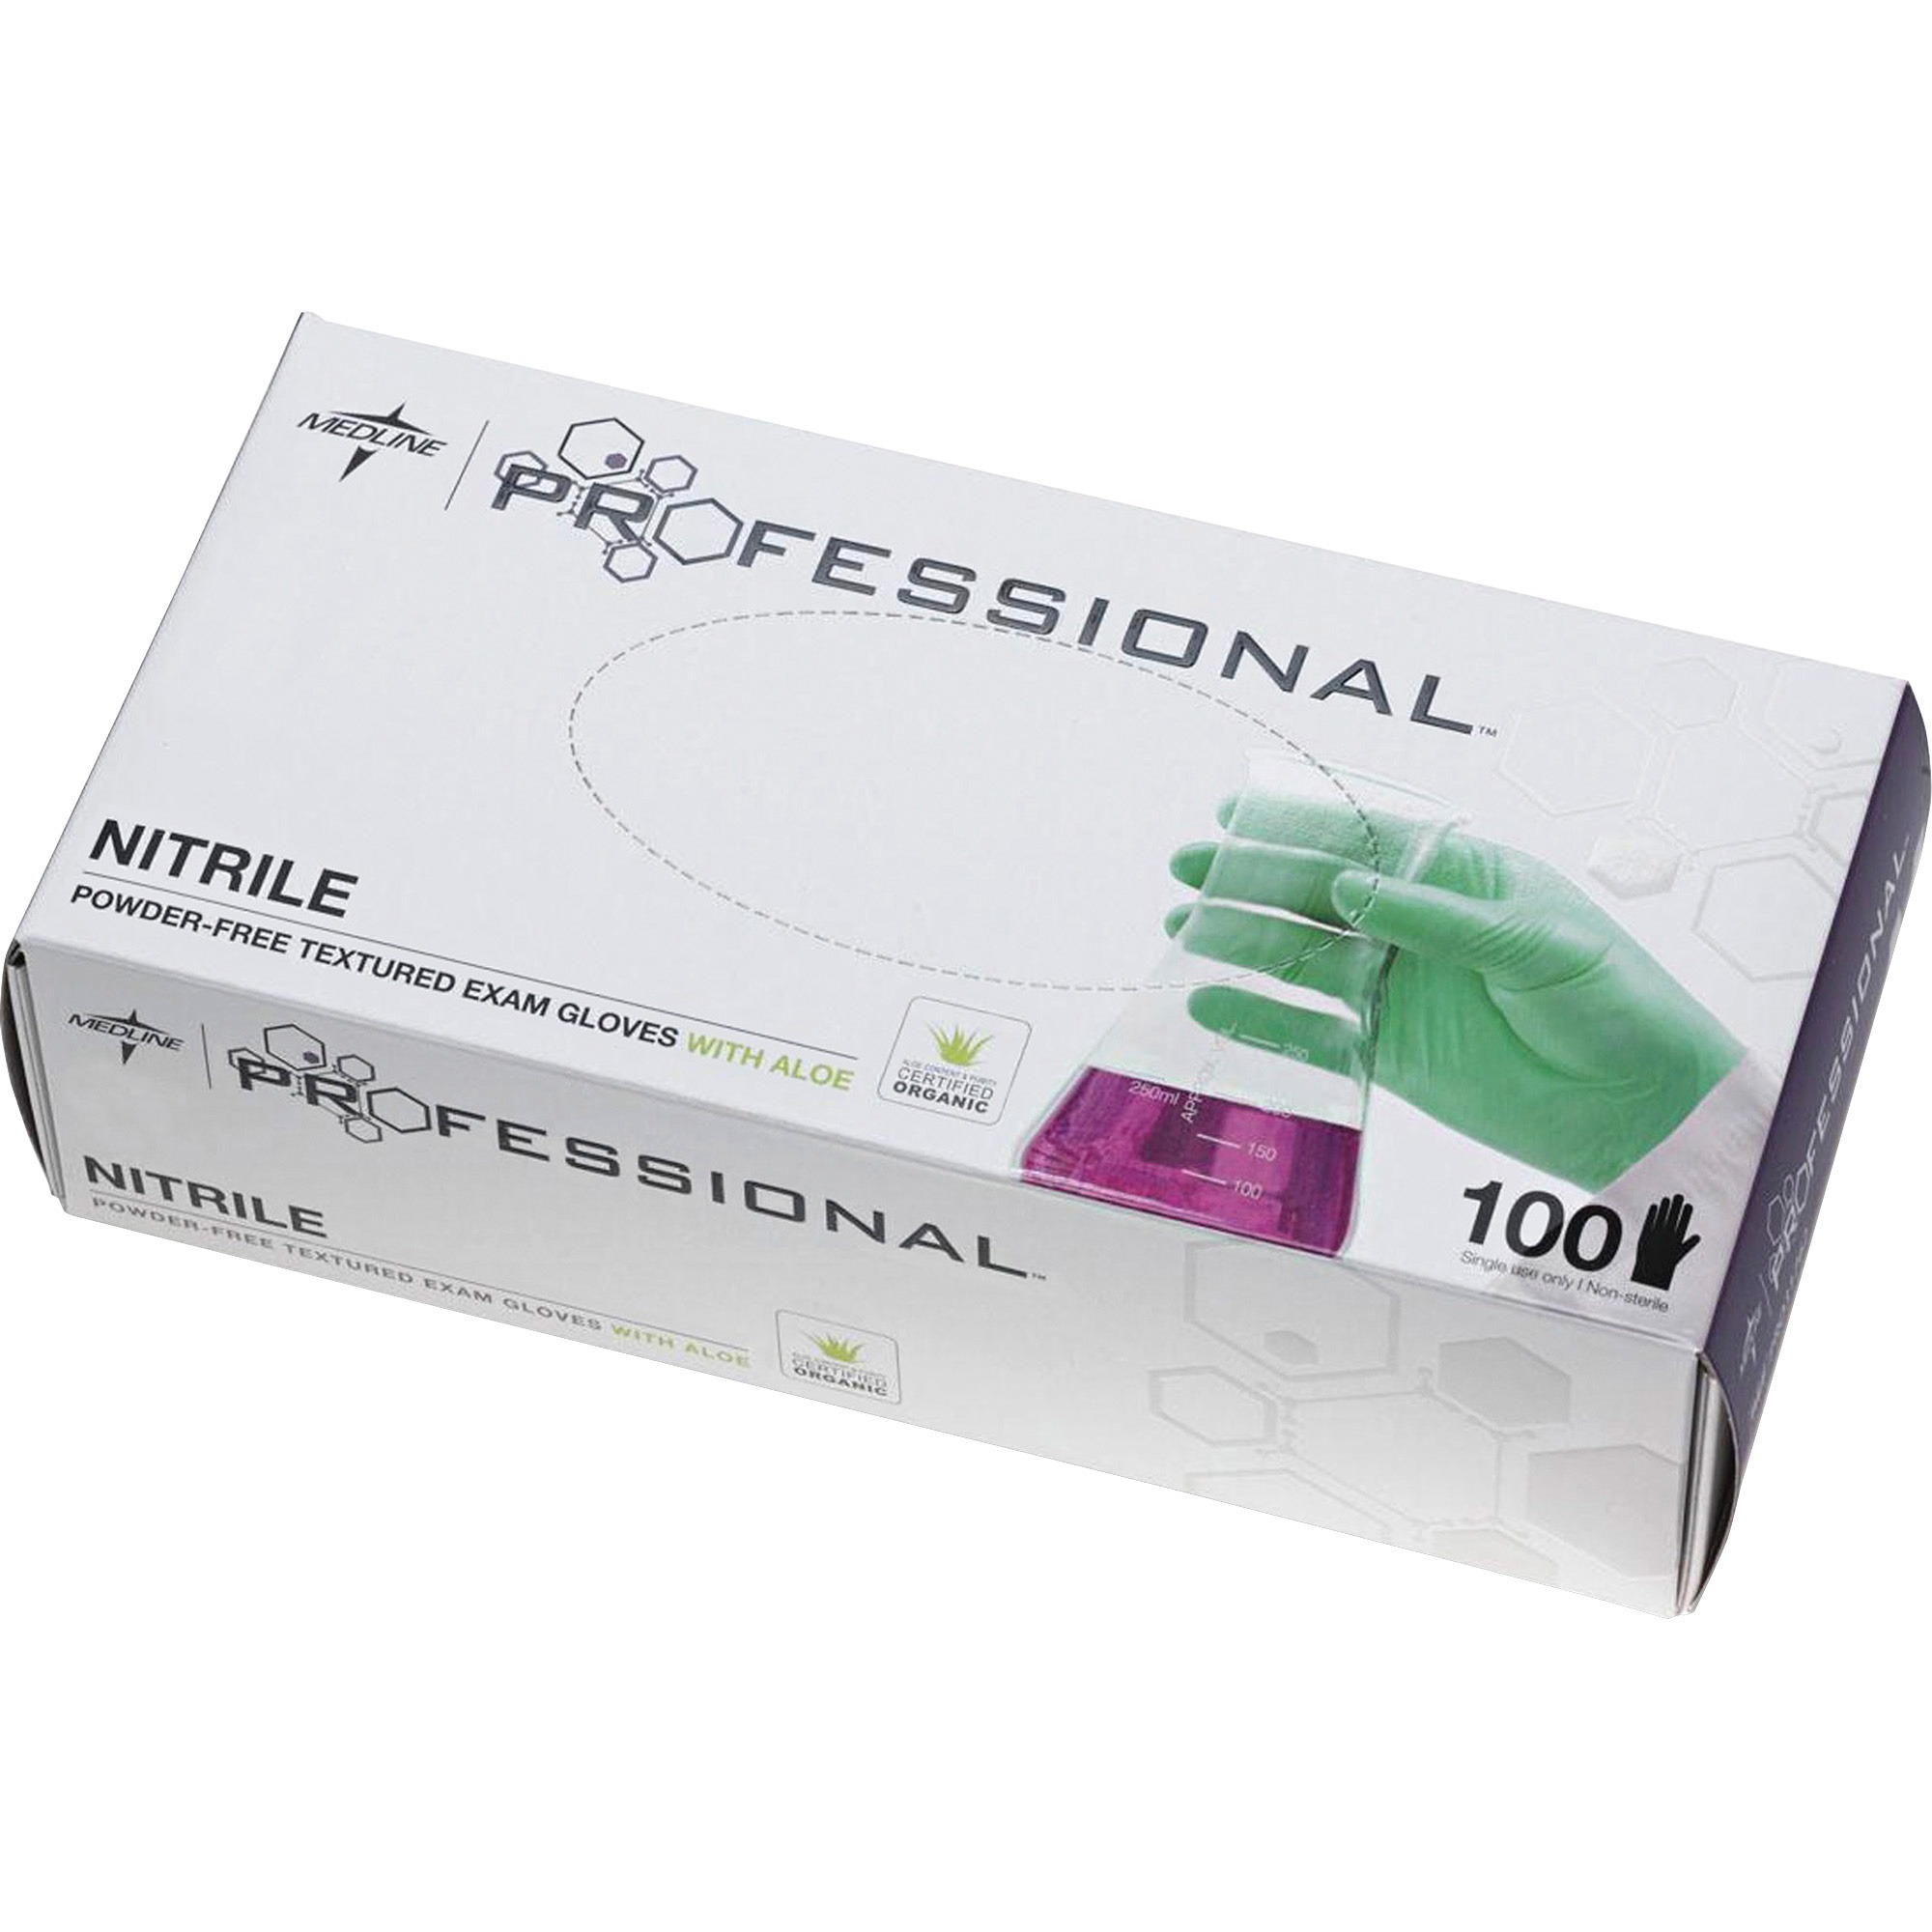 Medline, MIIPRO31764, Professional Series Aloetouch Gloves, 100 / Box, Green